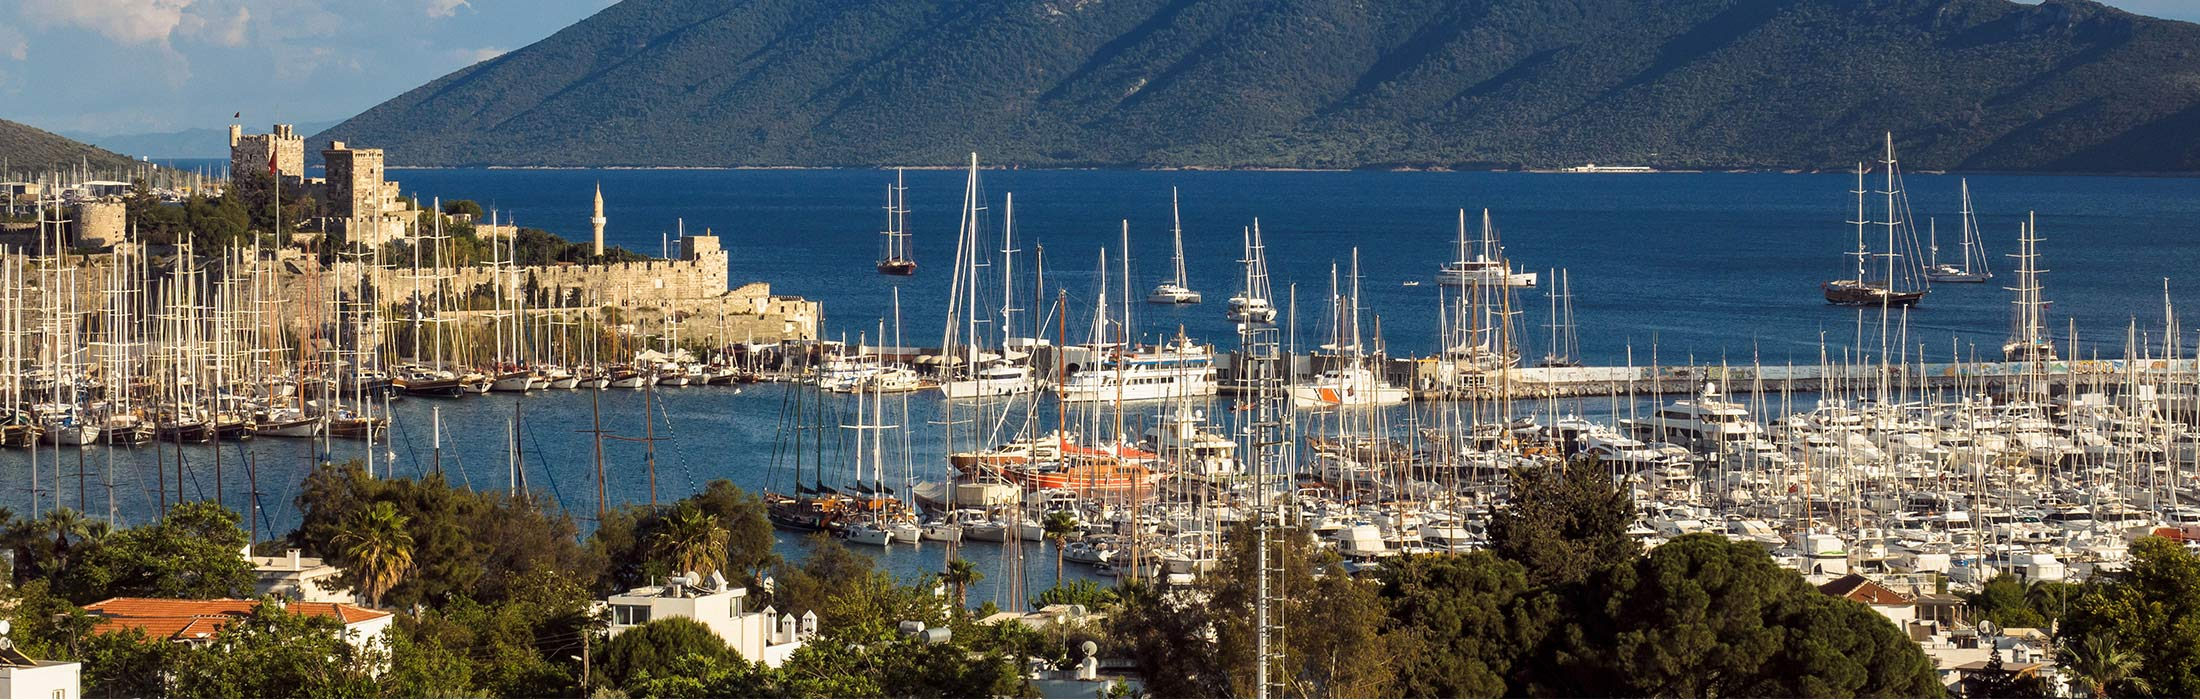 top-yacht-charter-destinations-mediterranean-turkey-bodrum-main-slider-1.jpg